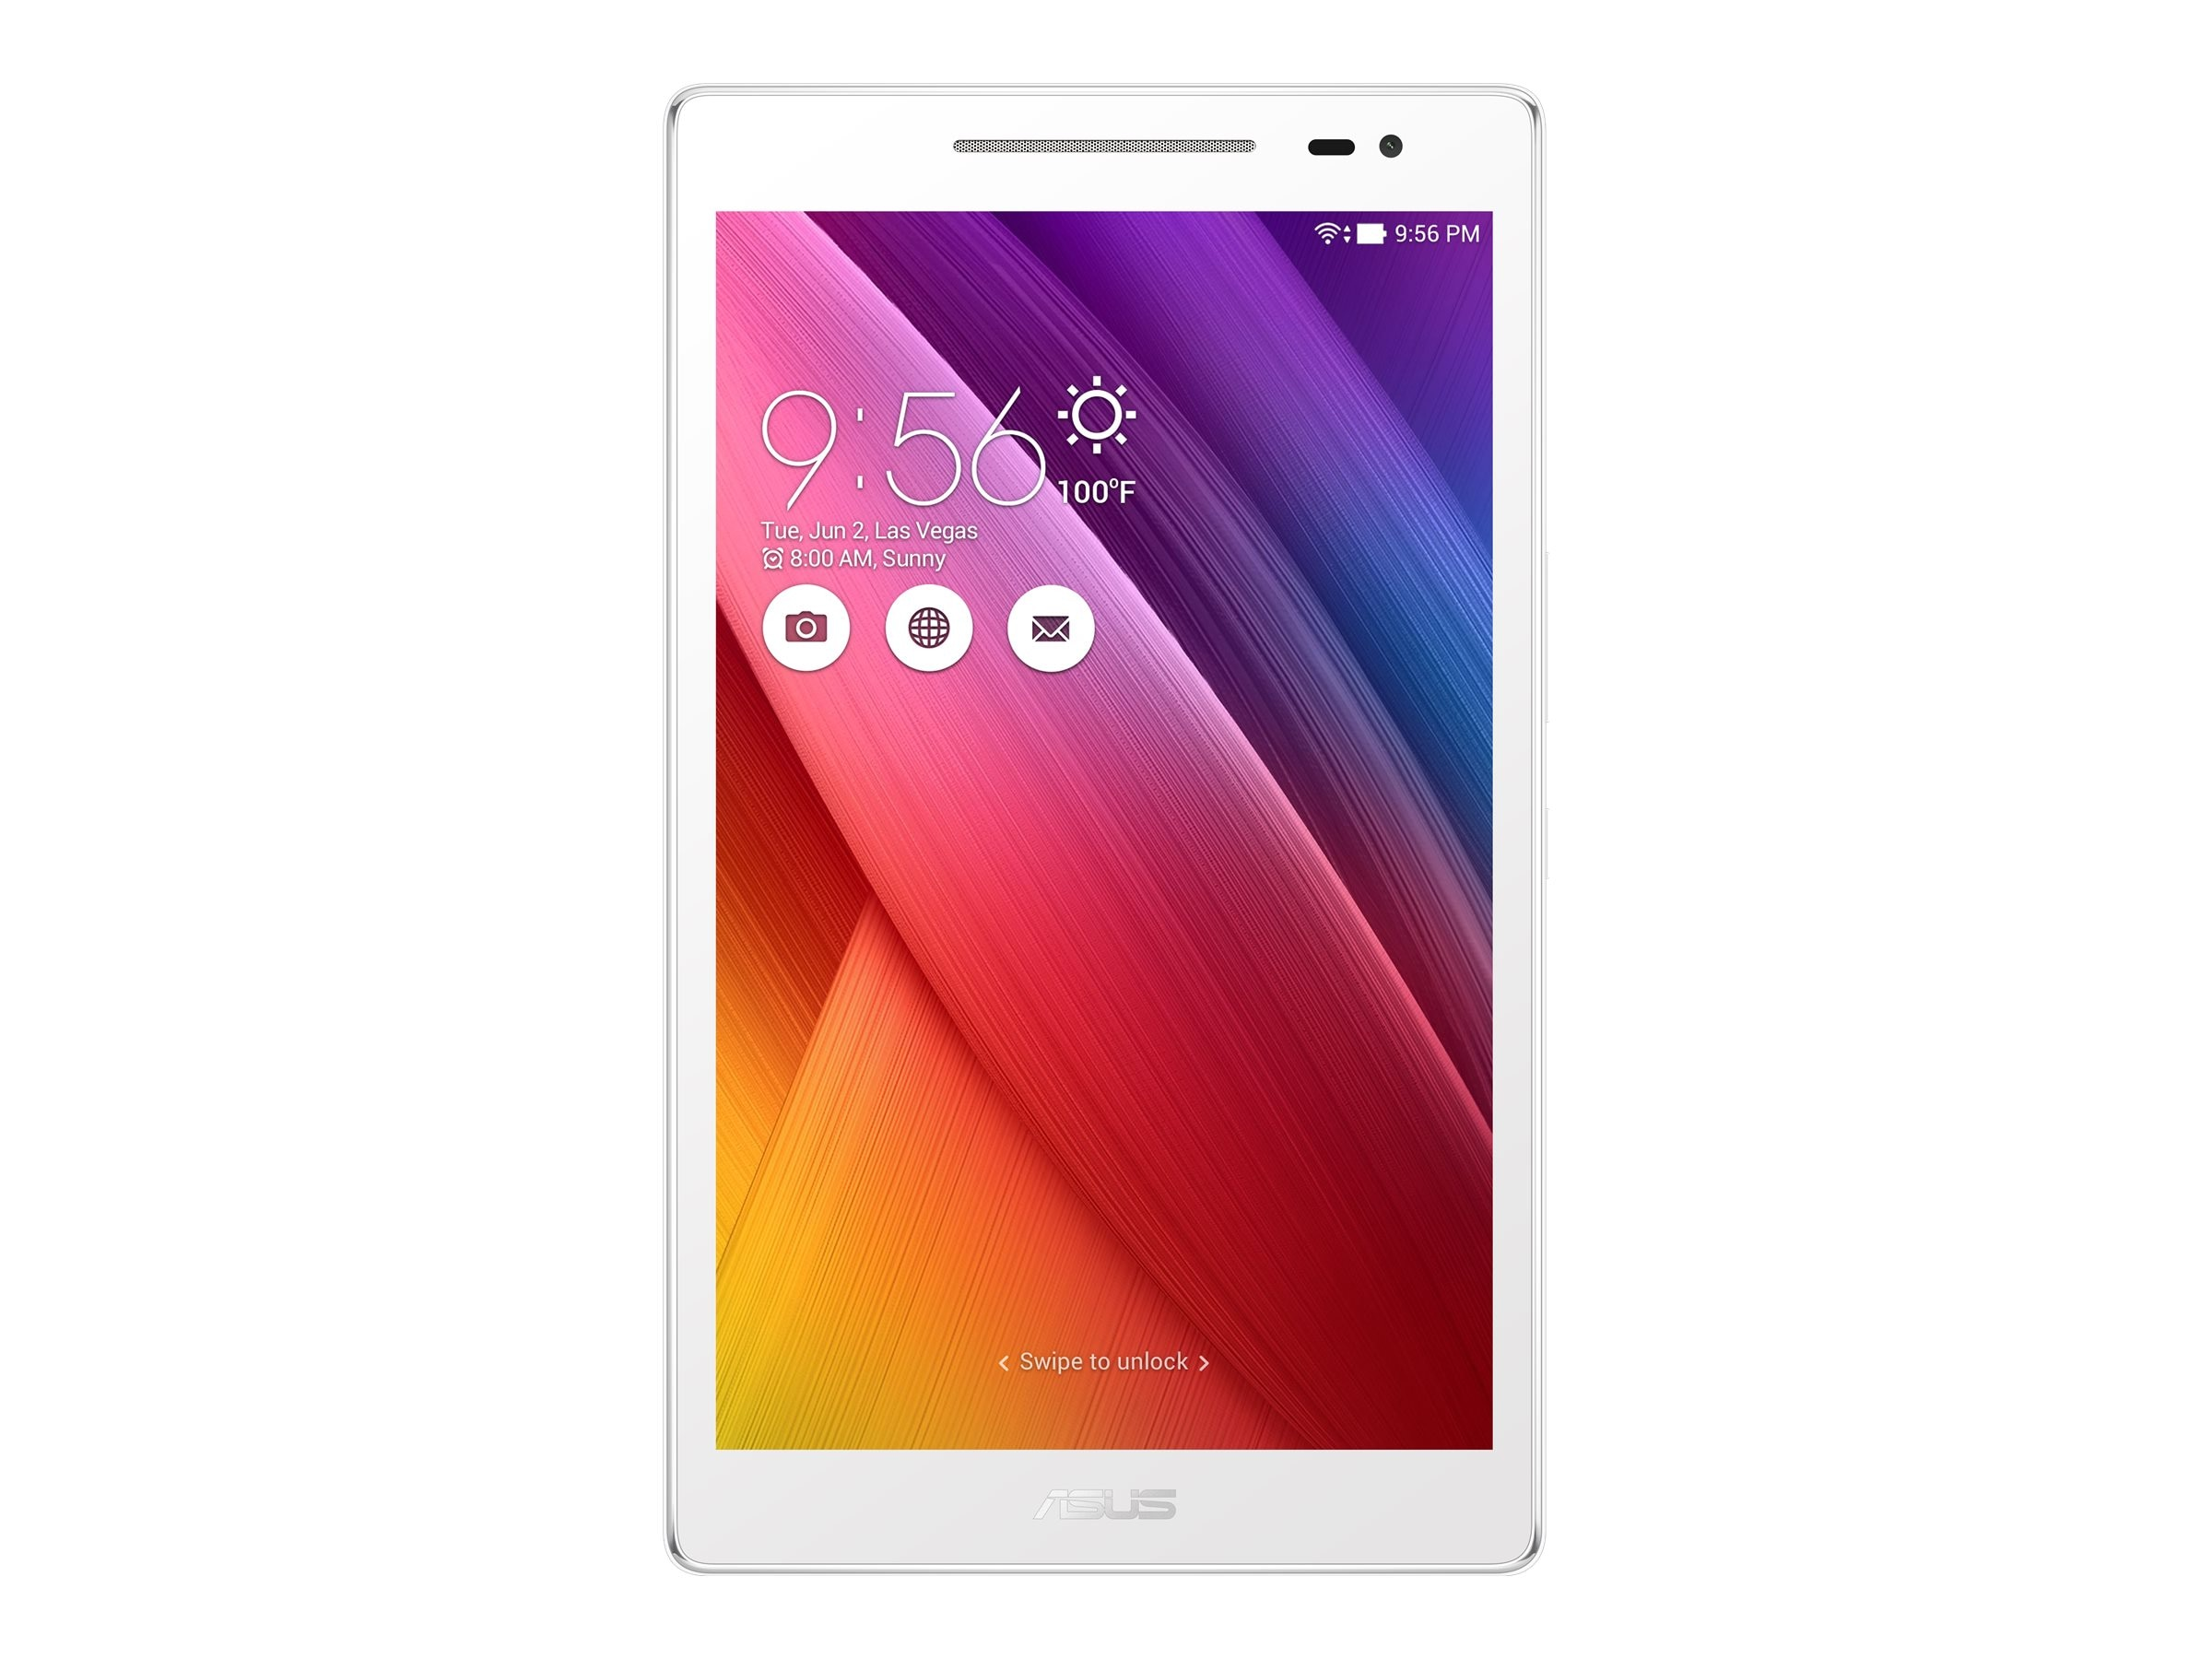 Asus Tablet PC Core Atom x3-C3200 2GB 16GB 8 White, 90NP0222-M01460